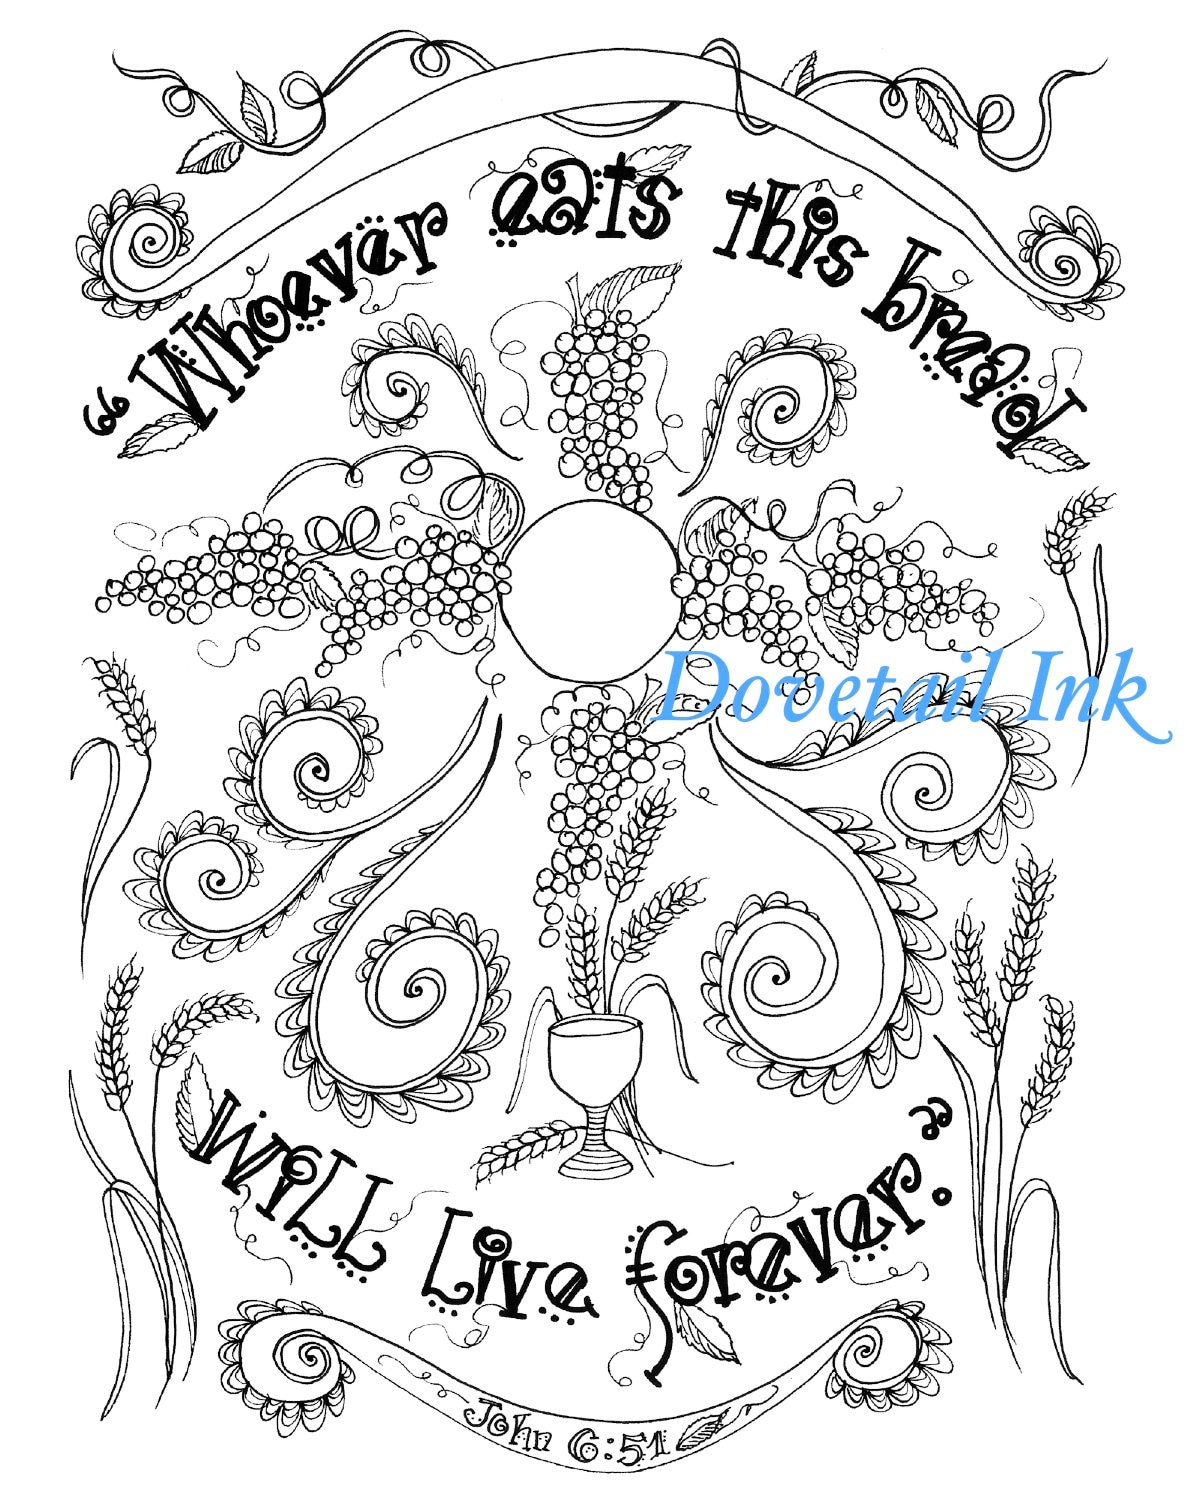 Printable Bread of Life Catholic Scripture Art Coloring Page